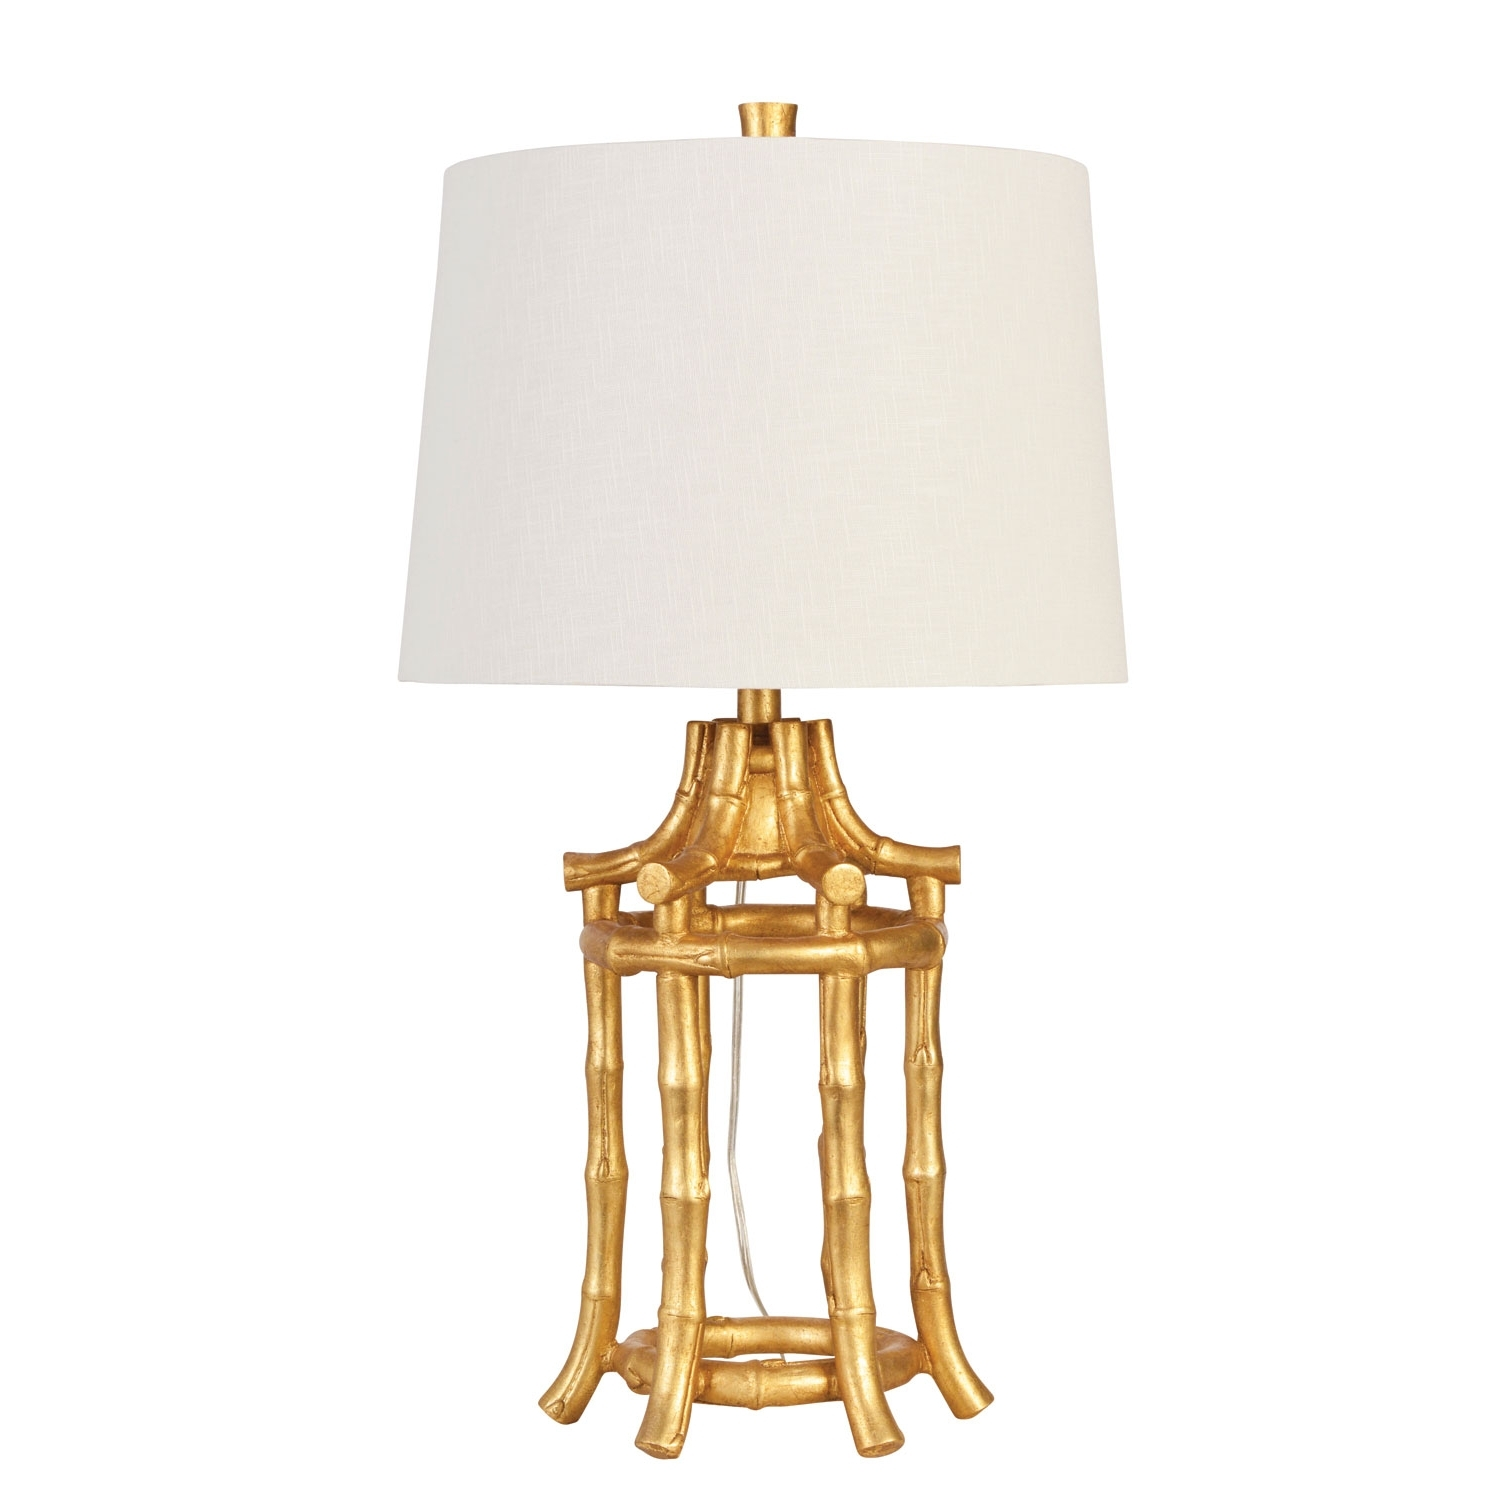 Popular Lamp : Gold Table Lamp Base Lamps Living Room Shades For With Metal Throughout Gold Living Room Table Lamps (View 8 of 20)